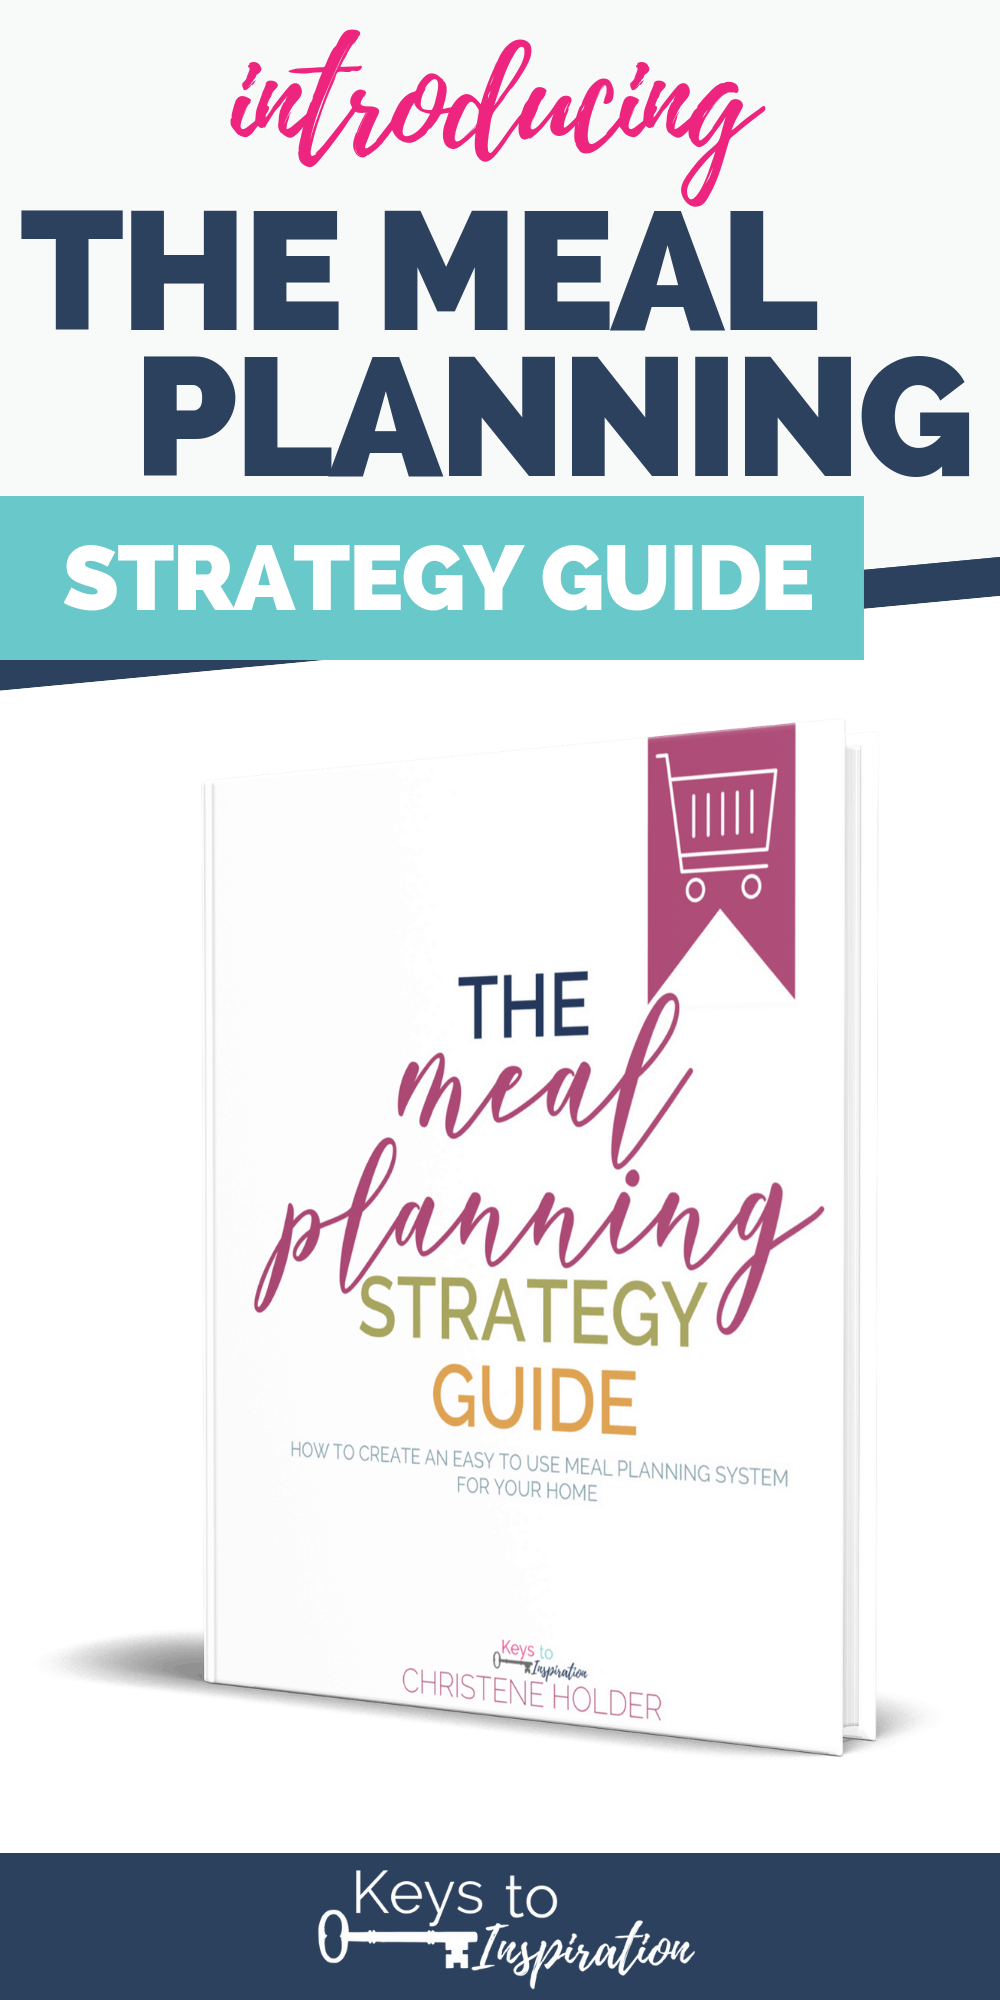 the meal planning strategy guide introduction image